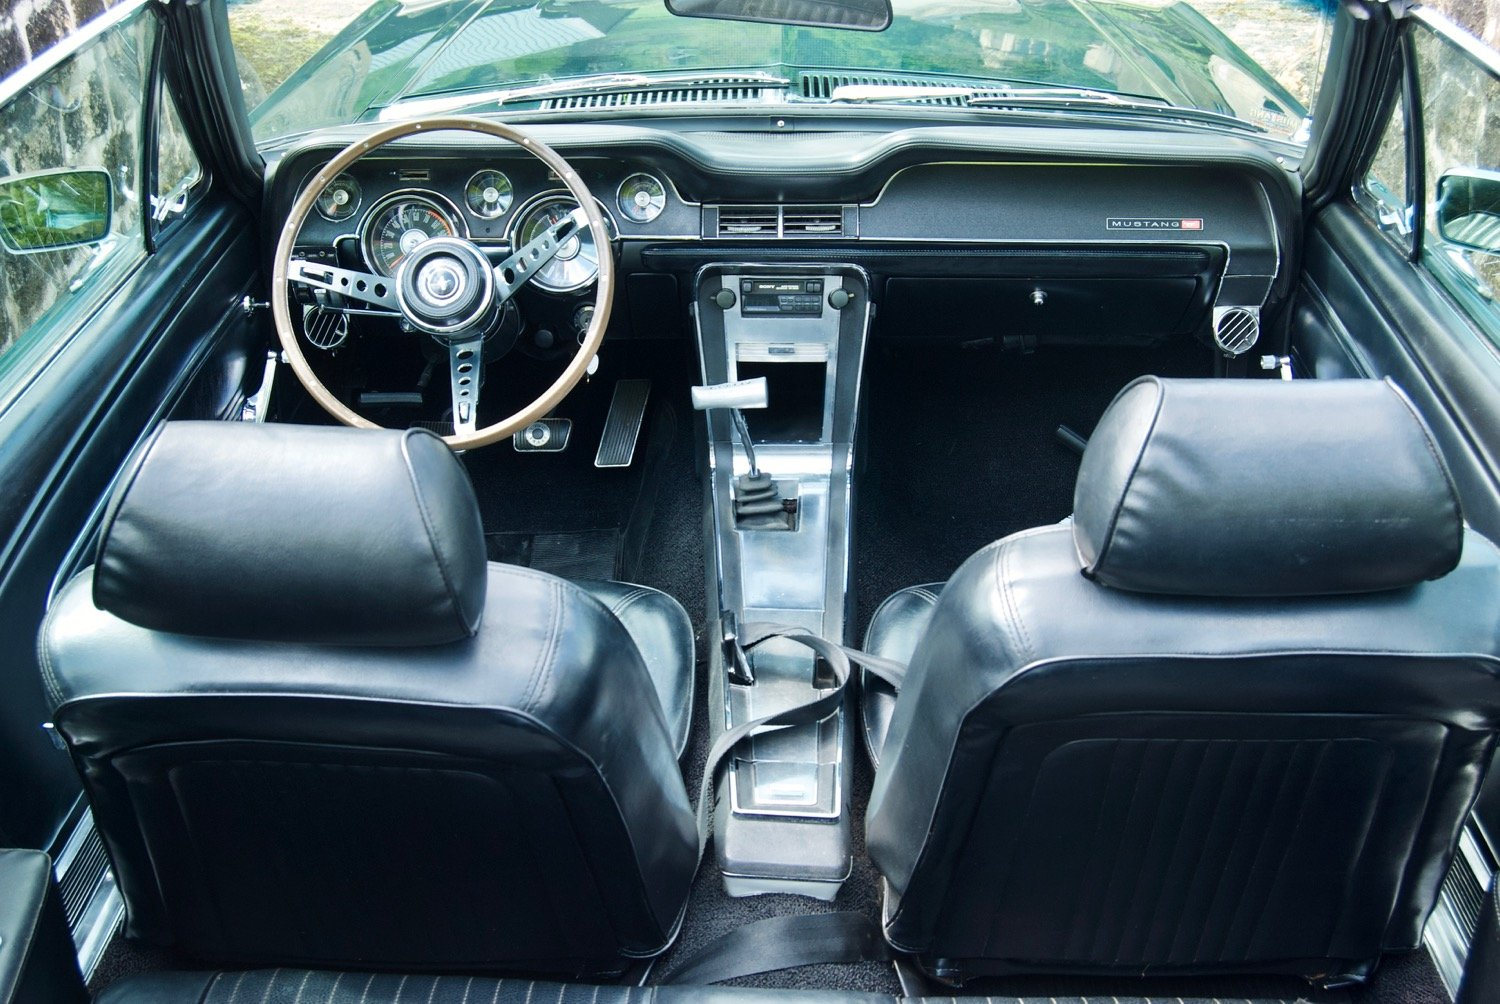 Tilly - 1967 Ford Mustang Convertible V8 - interior